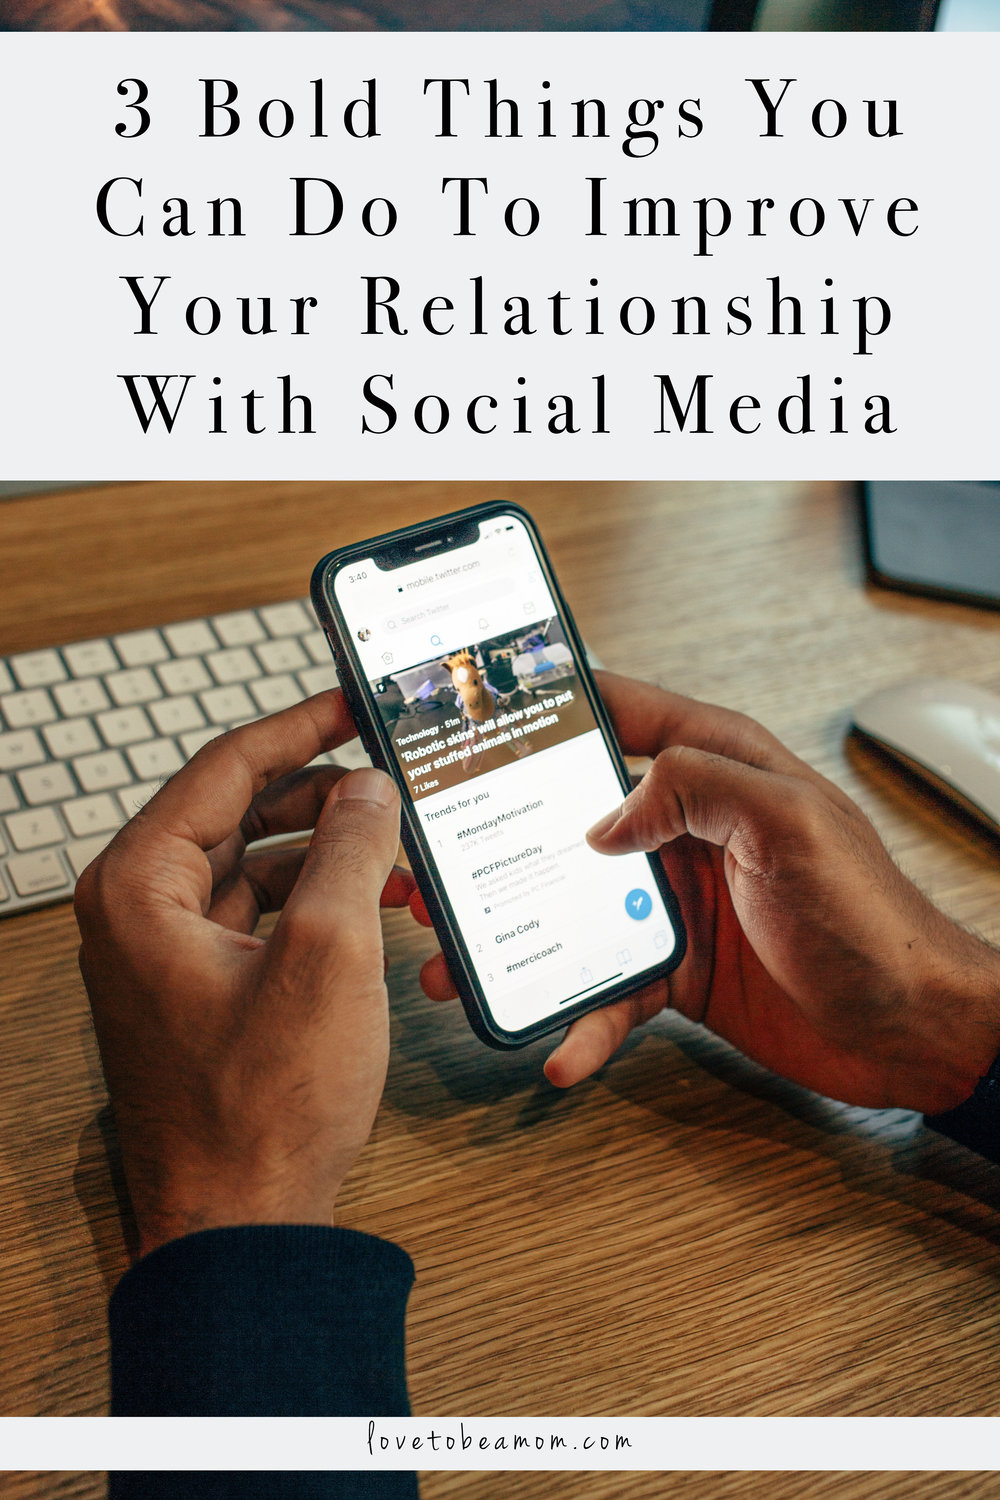 When it comes to social media, most of us have a love/hate relationship. Here are some bold ideas to make you love social media more.